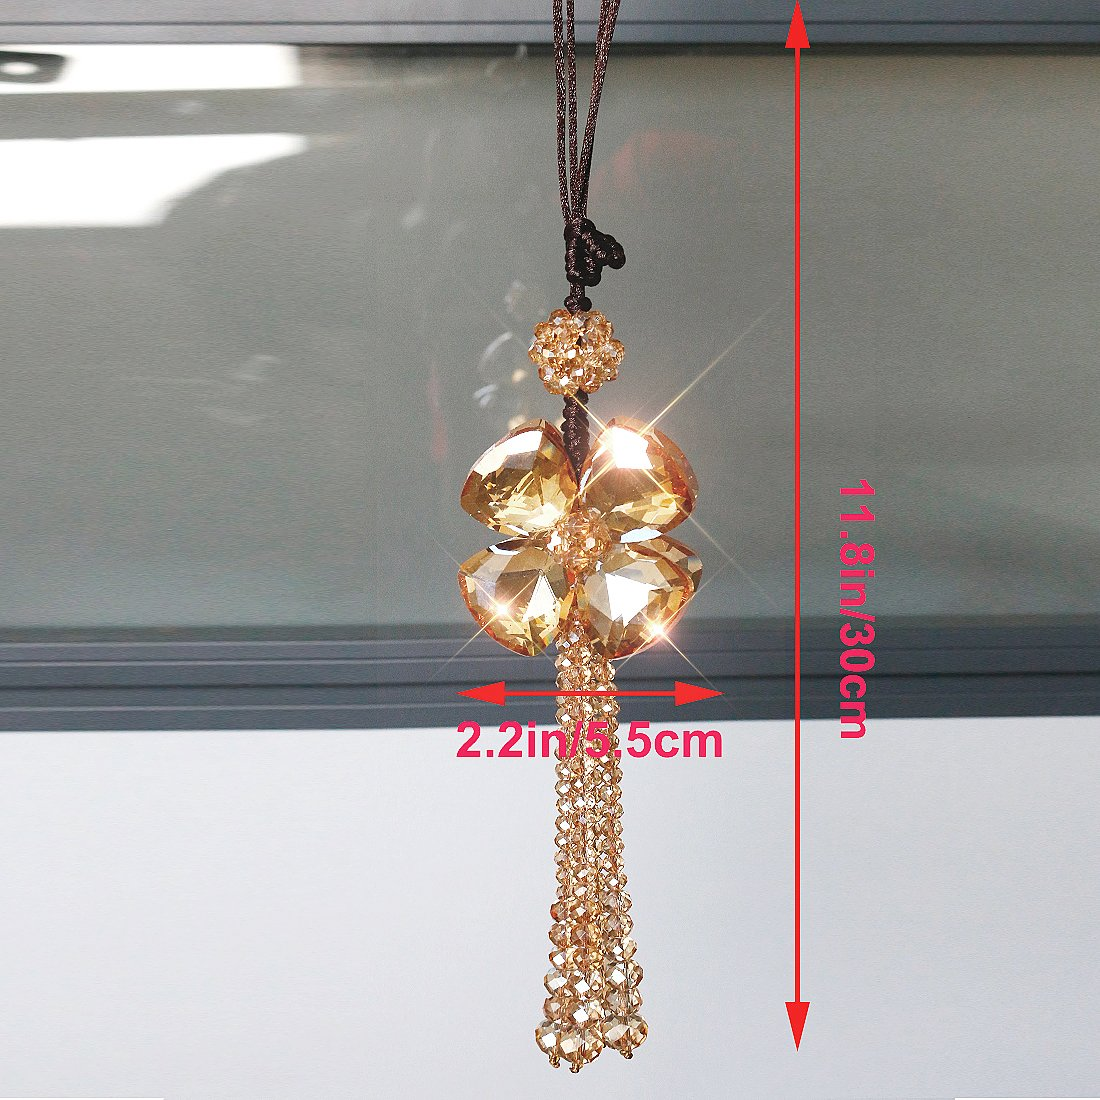 H&D Crystal Car Charms Hanging Ball Prisms Clover Ornament Car Rear View Mirror Pendant Champagne by H&D (Image #2)